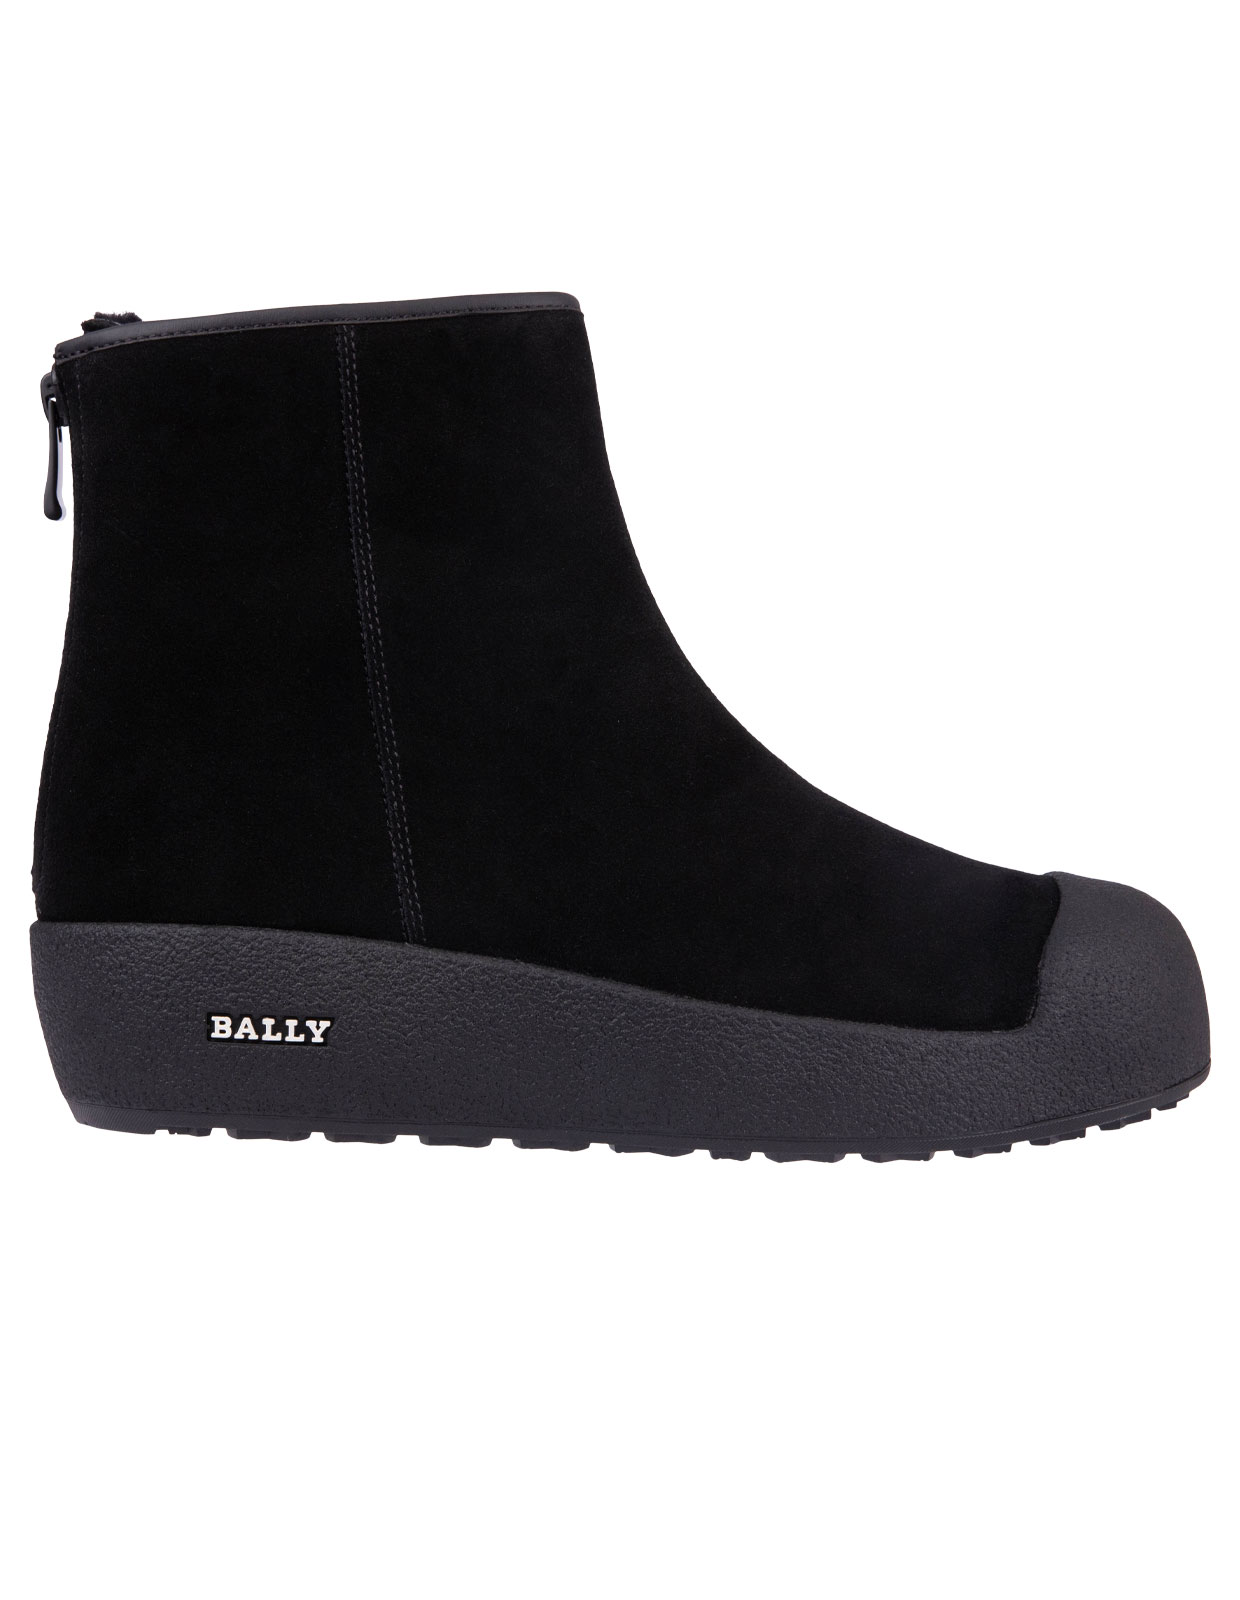 Bally curling Black